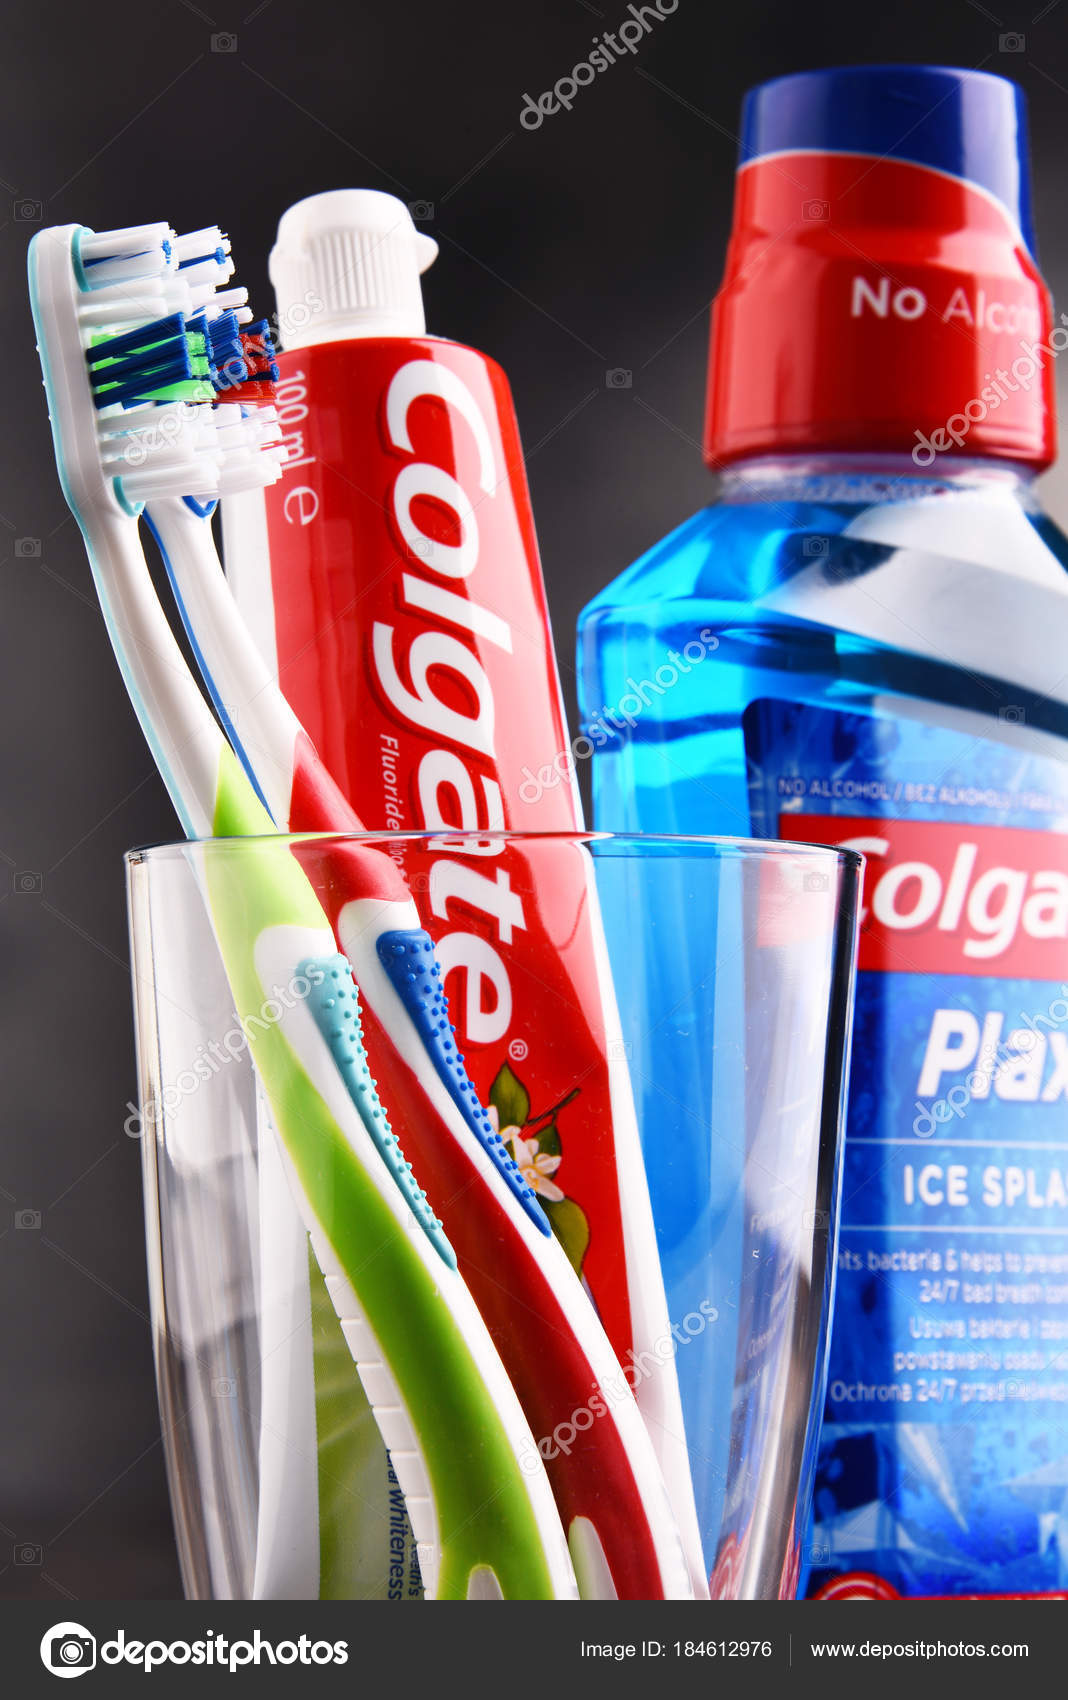 Pmage: colgate toothpaste picture | Composition with Colgate